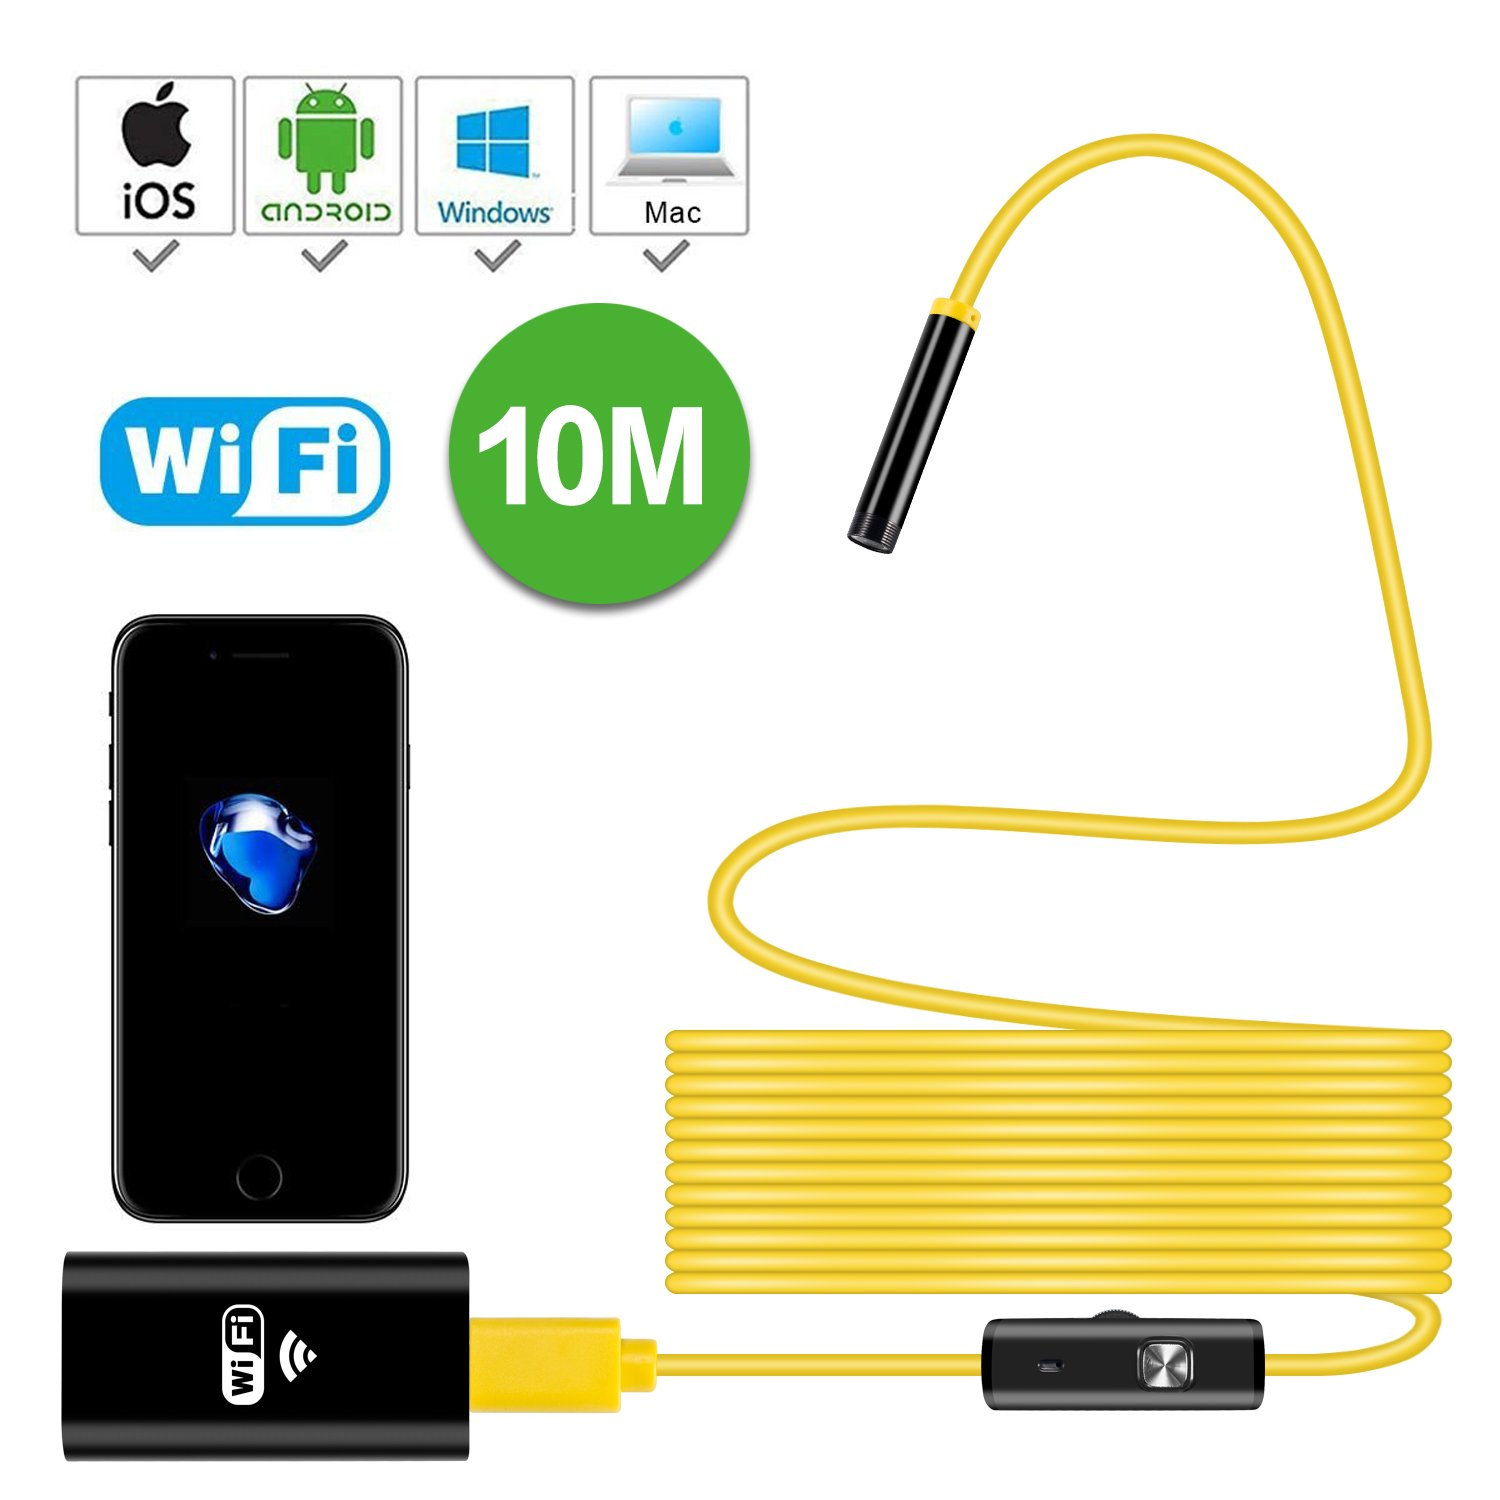 Newest Wireless Endoscope, 10M WiFi Borescope Inspection Camera 2.0 Megapixels HD Snake Camera for Android and iOS Smartphone, iPhone, Samsung, Tablet … (Yellow Soft) by YIERBLUE